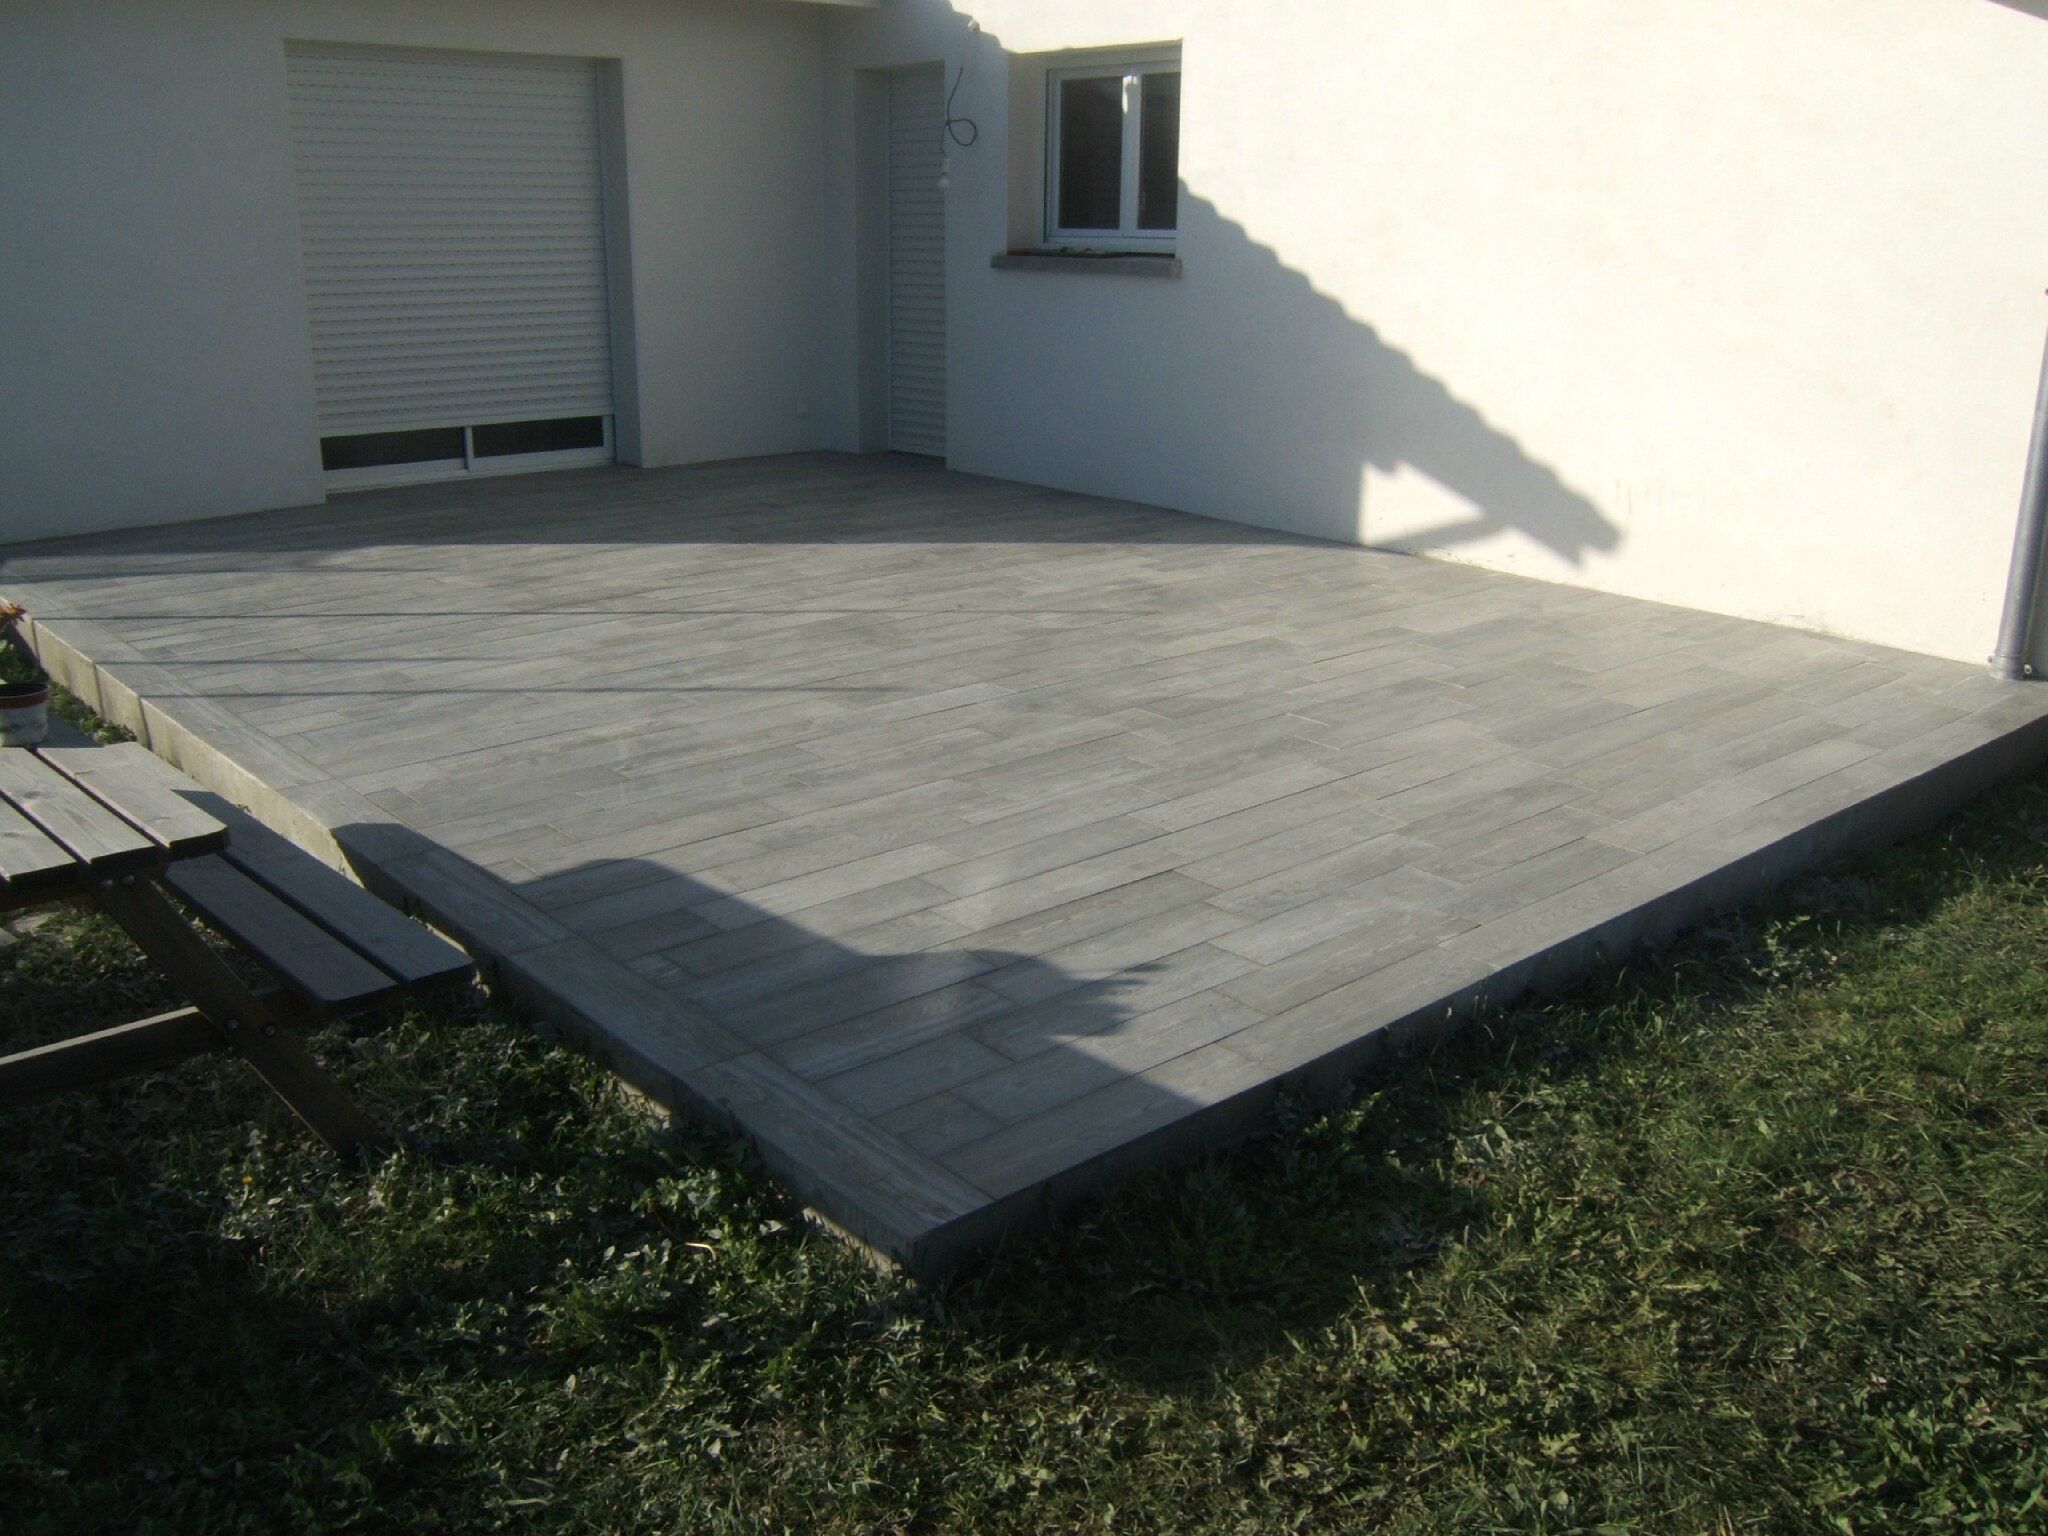 Pose Carrelage Terrasse Imitation Bois Diverses Id Es De Conception De Patio En